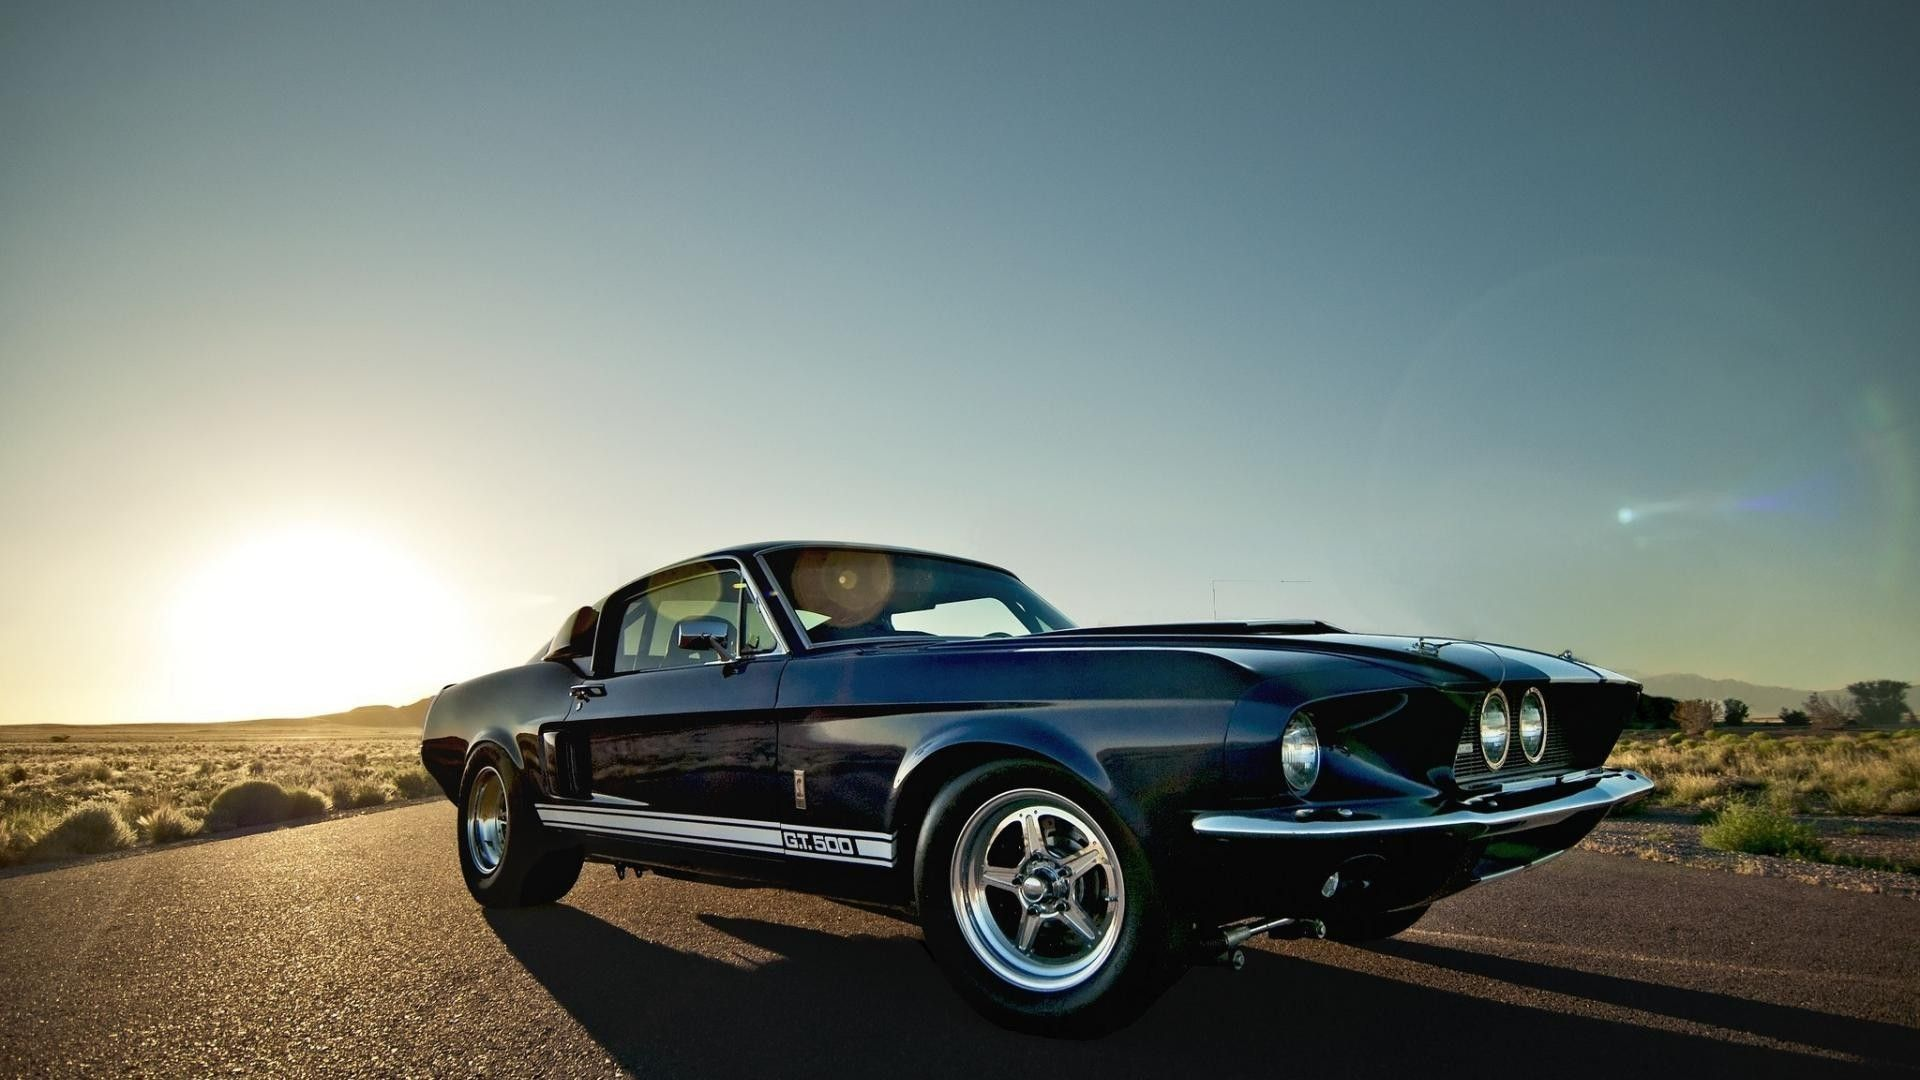 Classic Ford Mustang Wallpapers Top Free Classic Ford